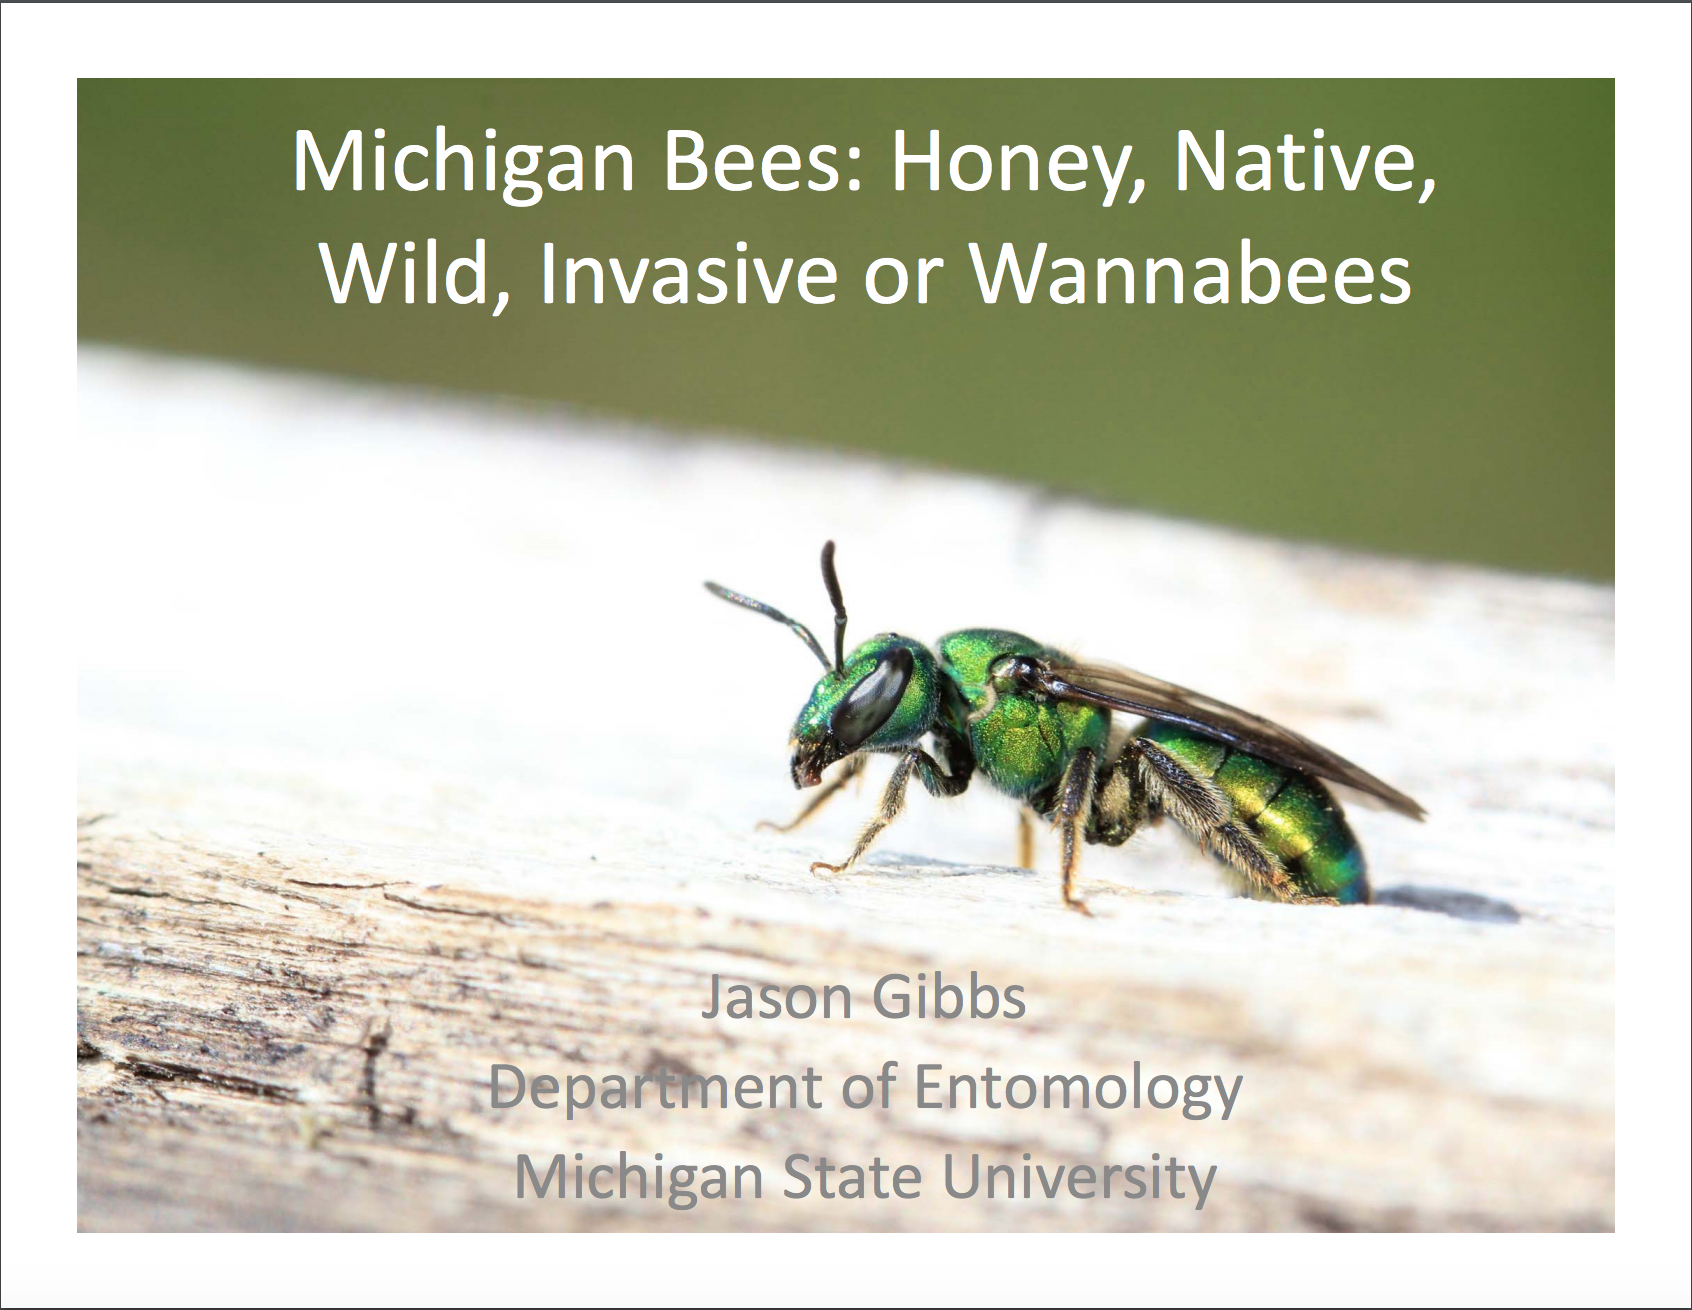 PDF cover of Michigan Bees